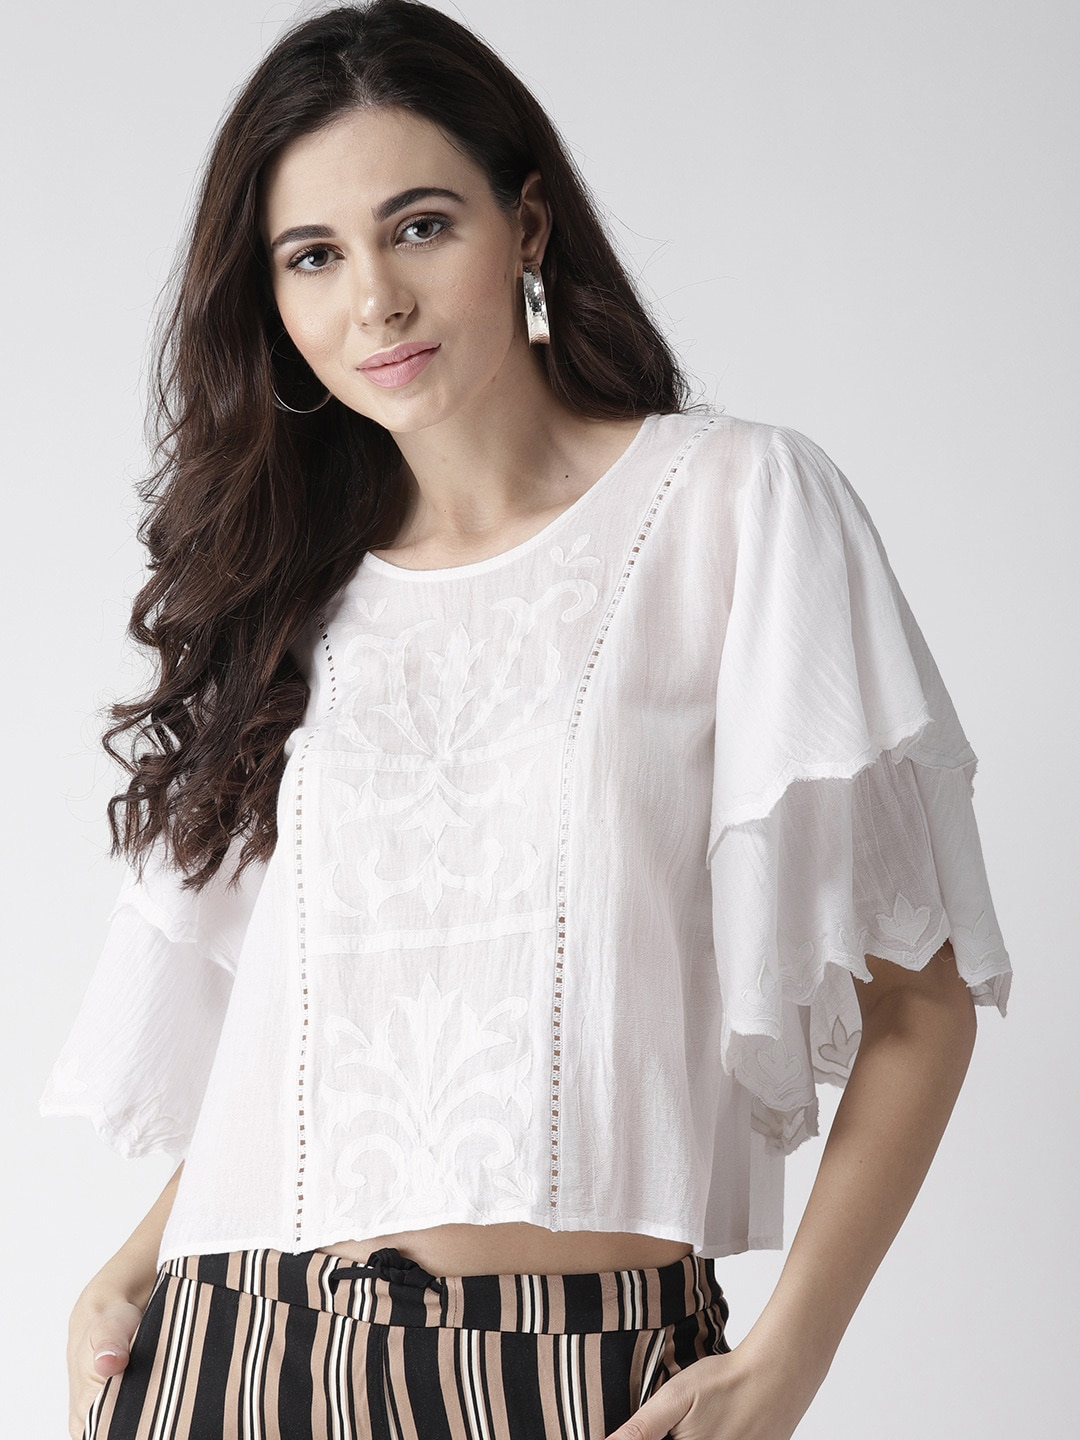 fbe784540 Lace Tops - Buy Lace Tops for Women   Girls Online in India